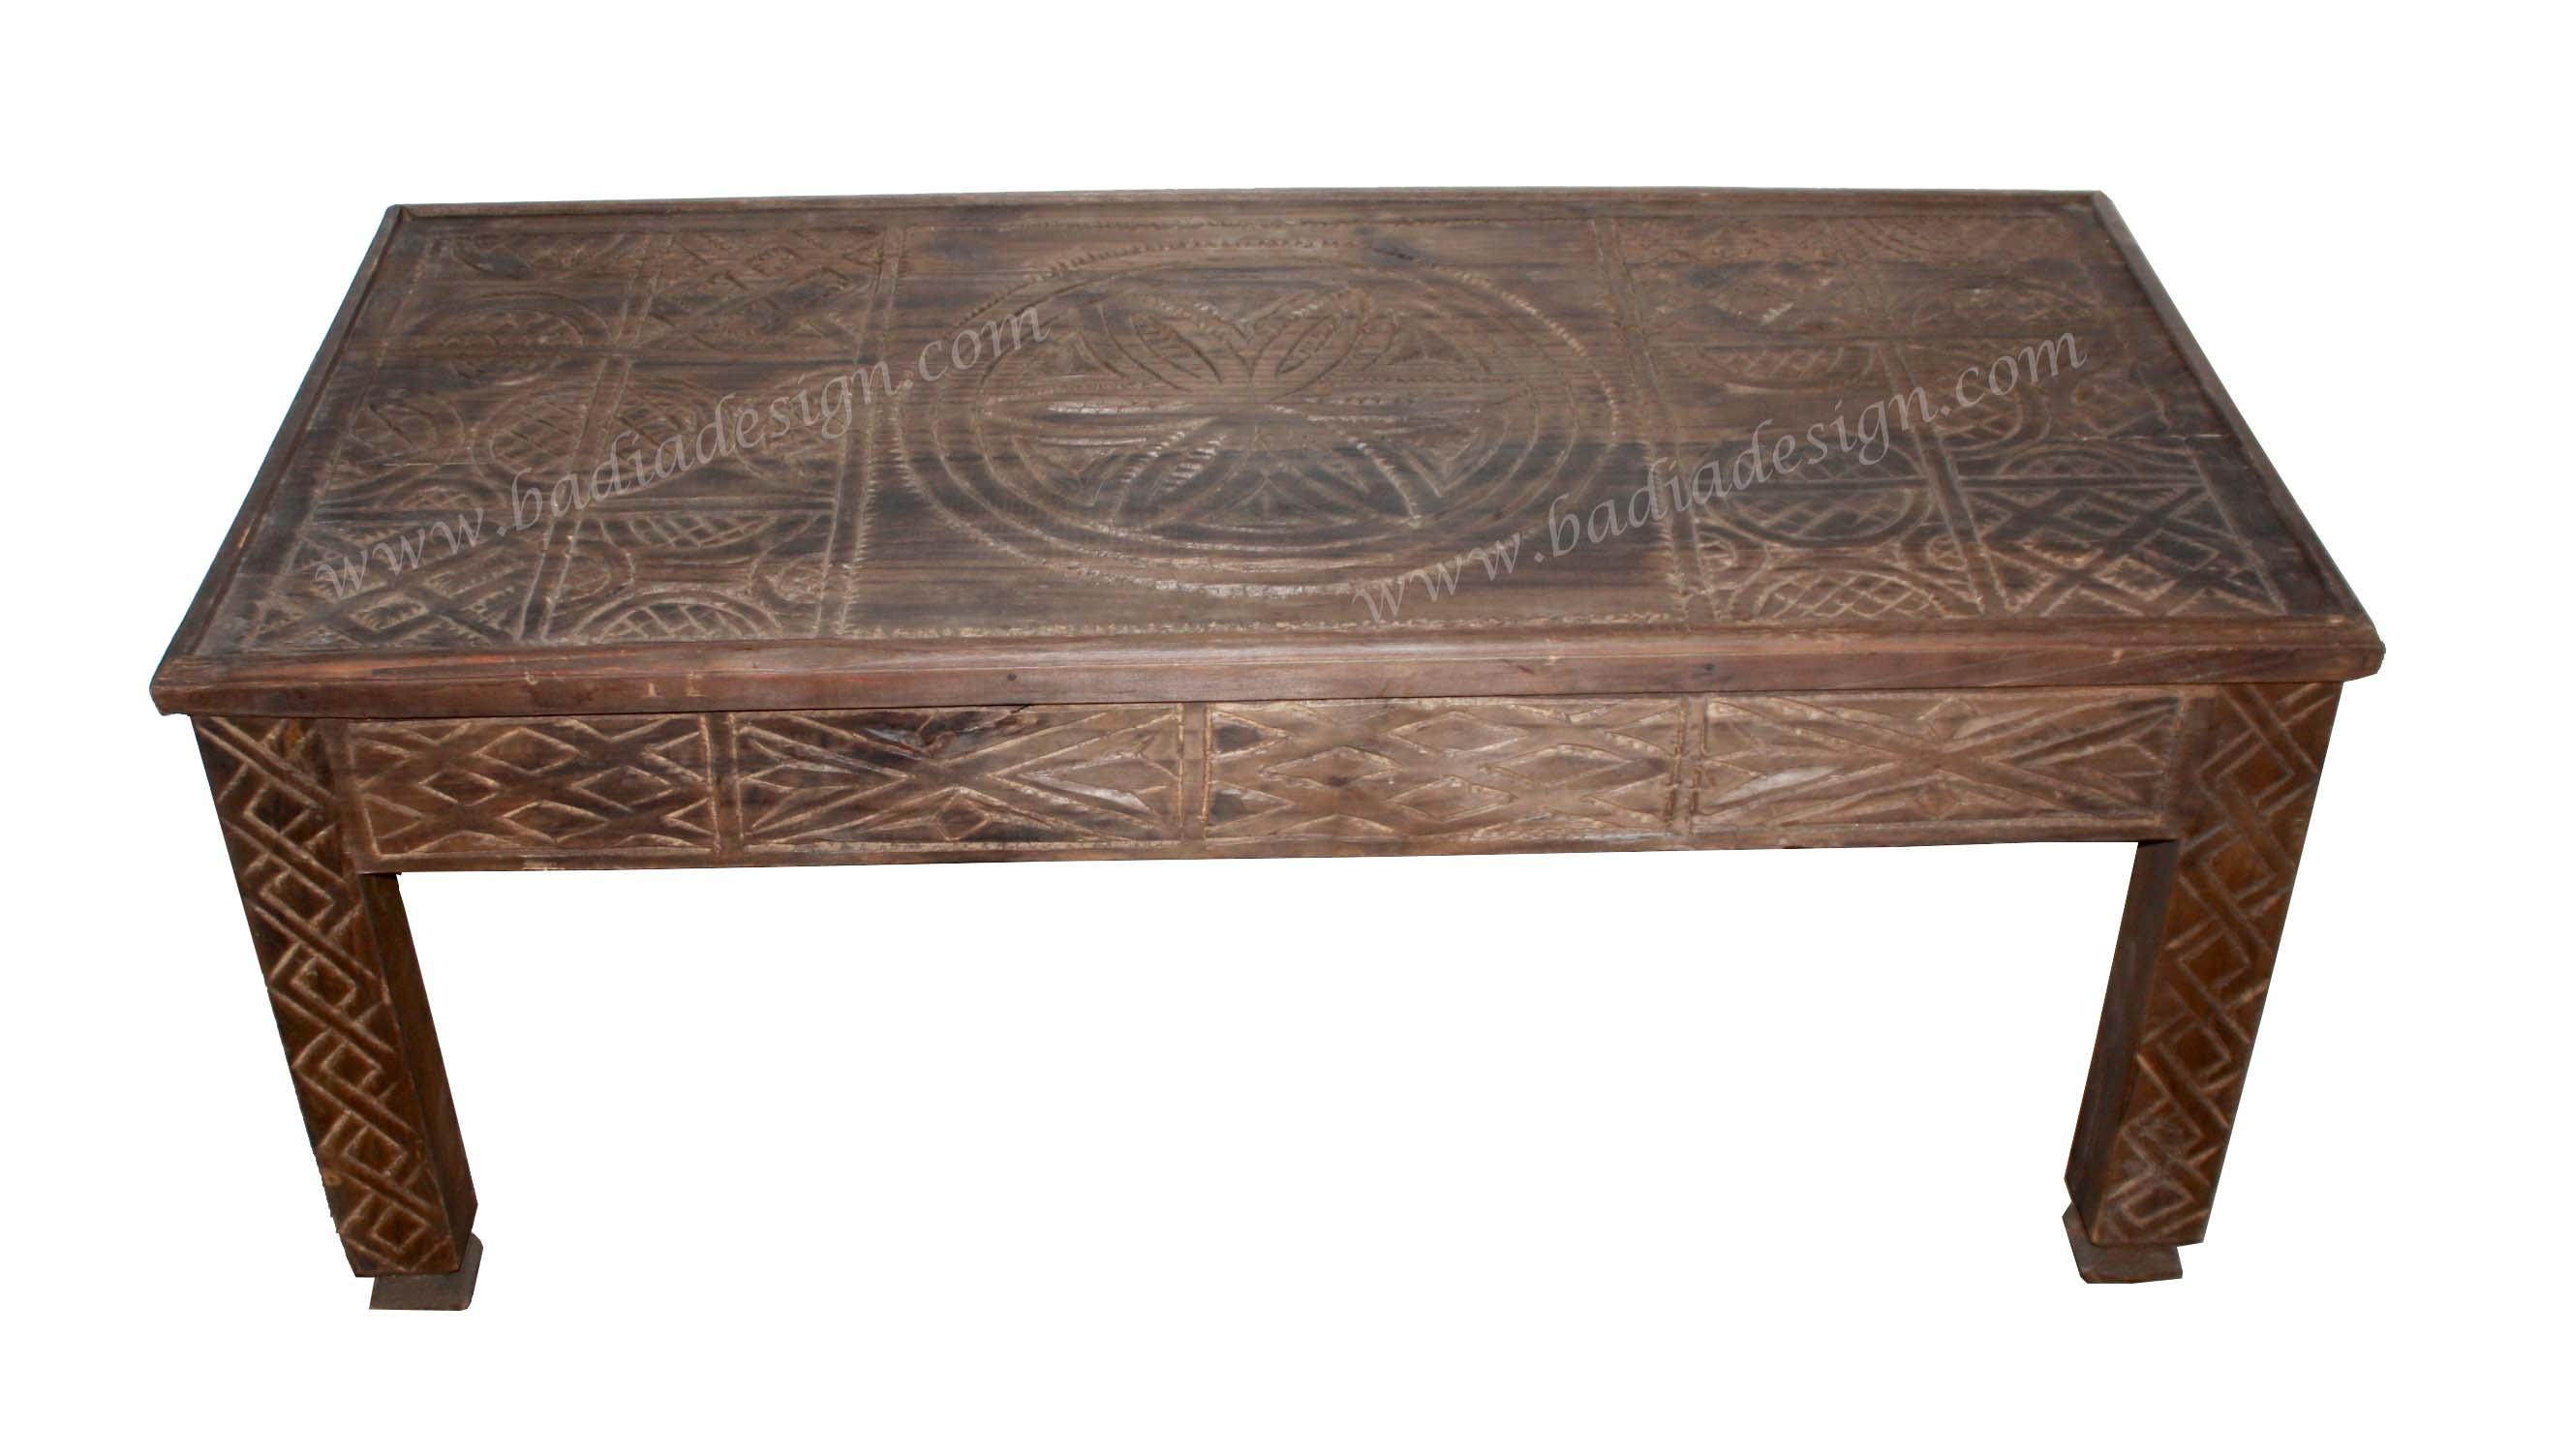 - Moroccan Hand Carved Wooden Coffee Table From Badia Design Inc.